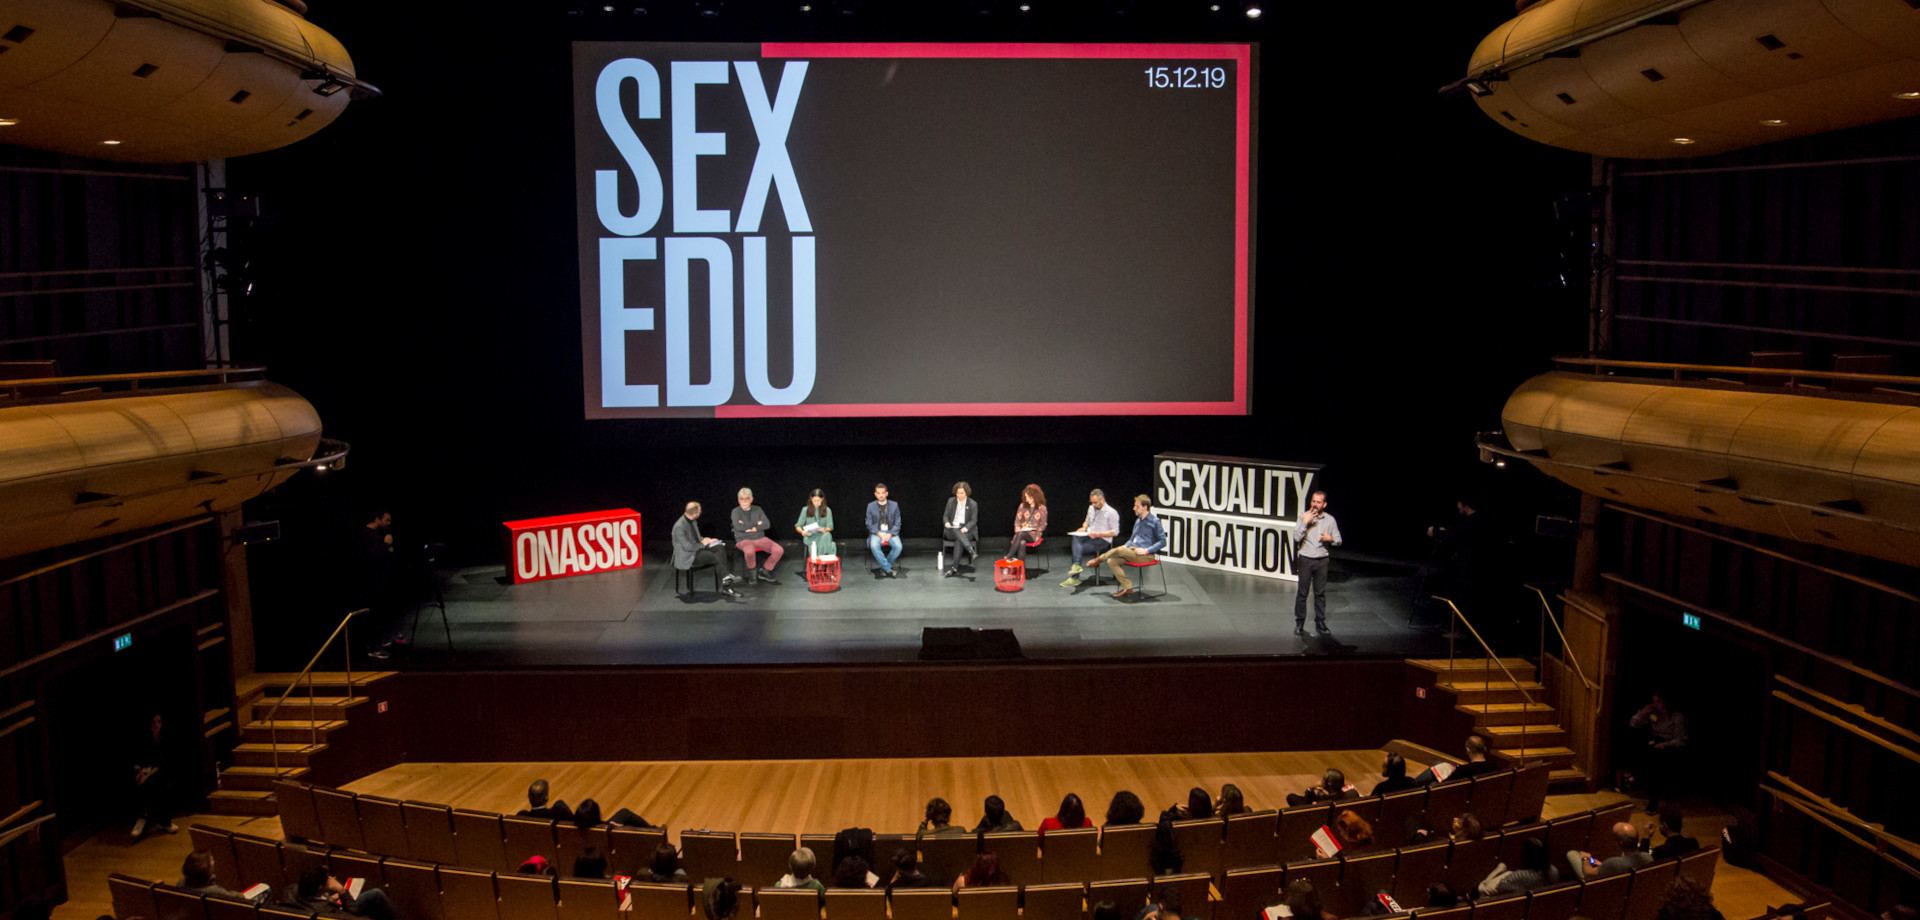 ONASSIS SEXUALITY EDUCATION DAY